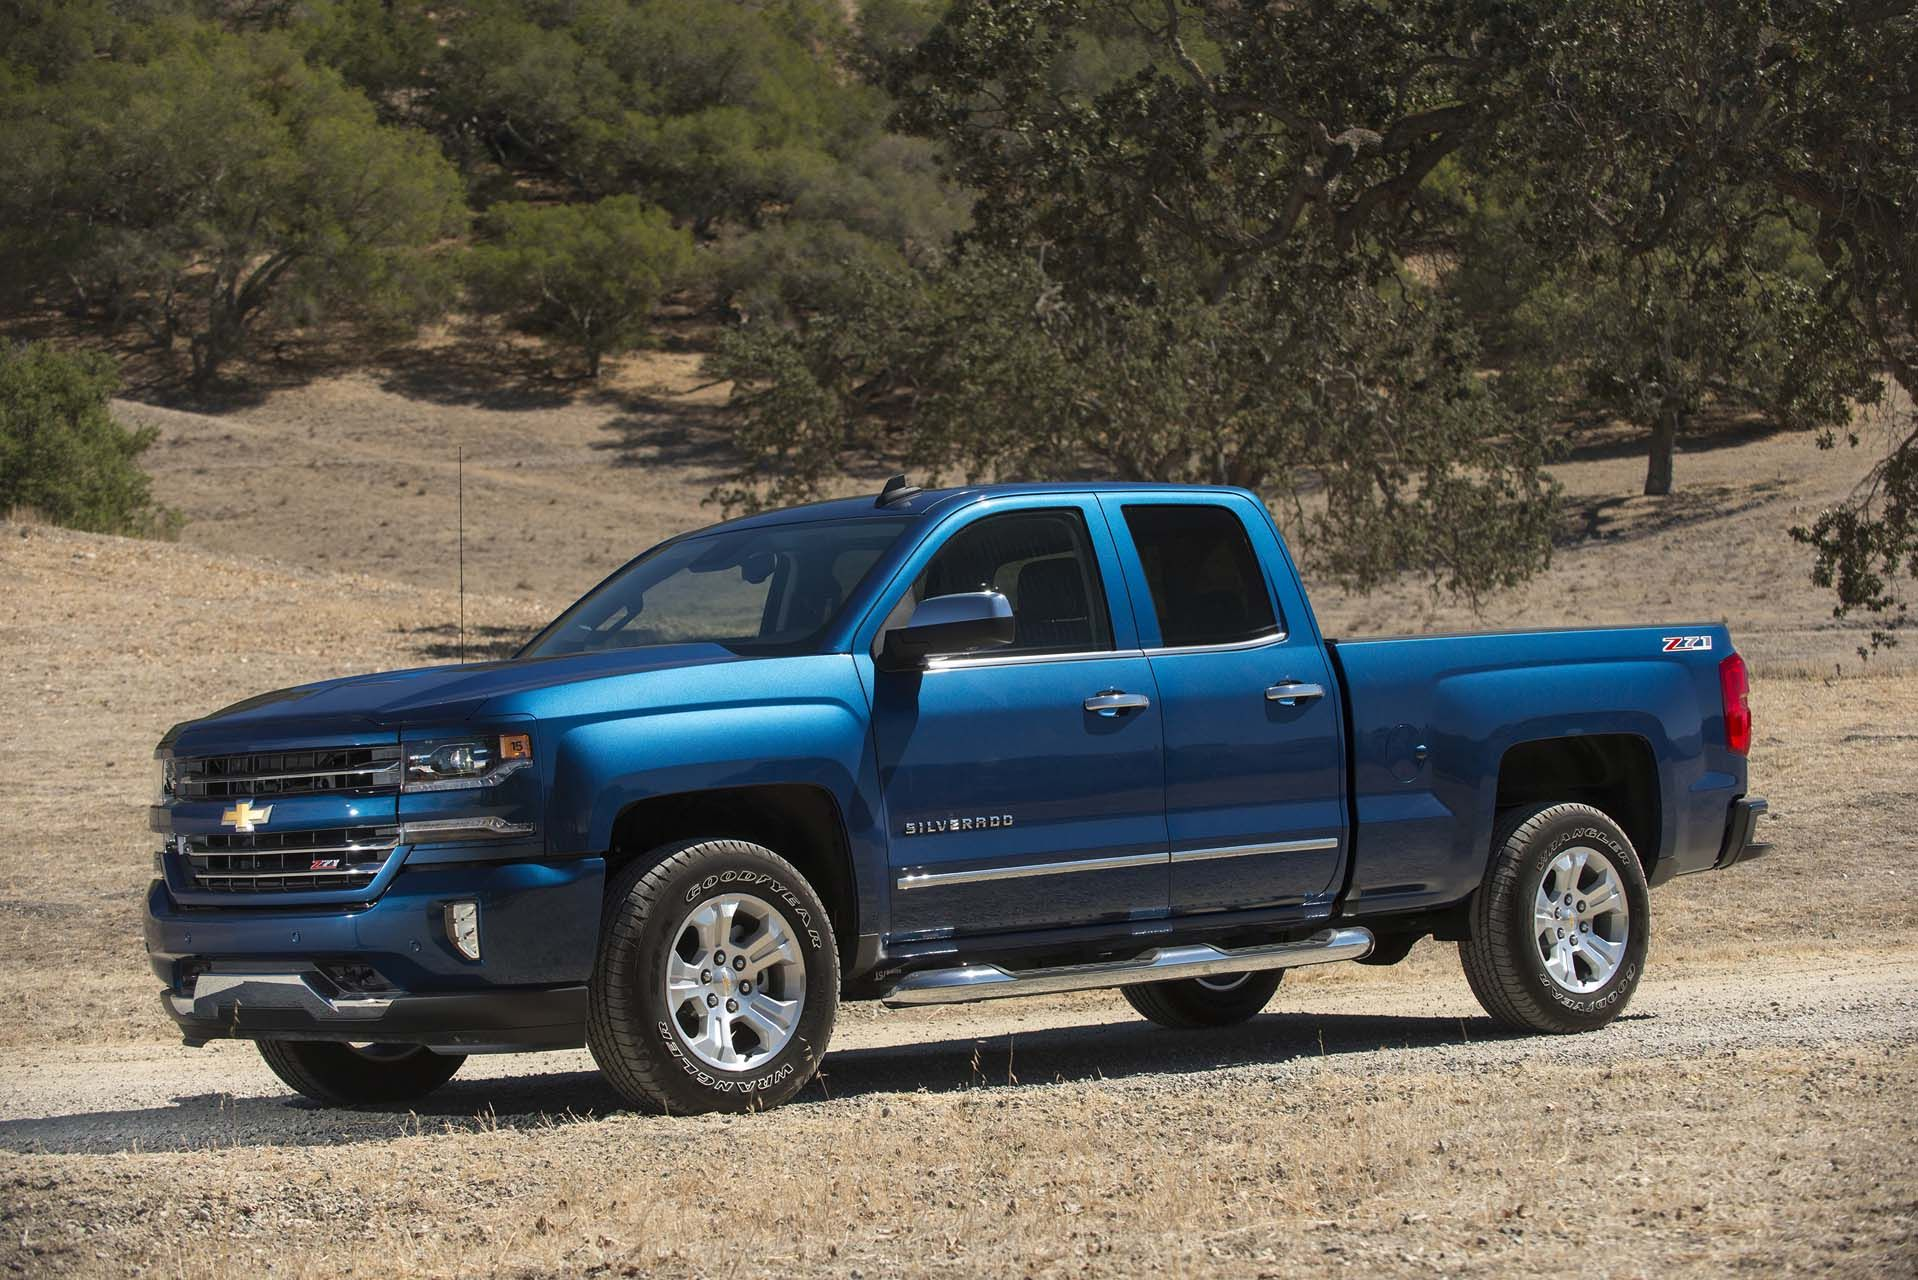 Get the latest reviews of the 2017 Chevrolet Silverado 1500 Find